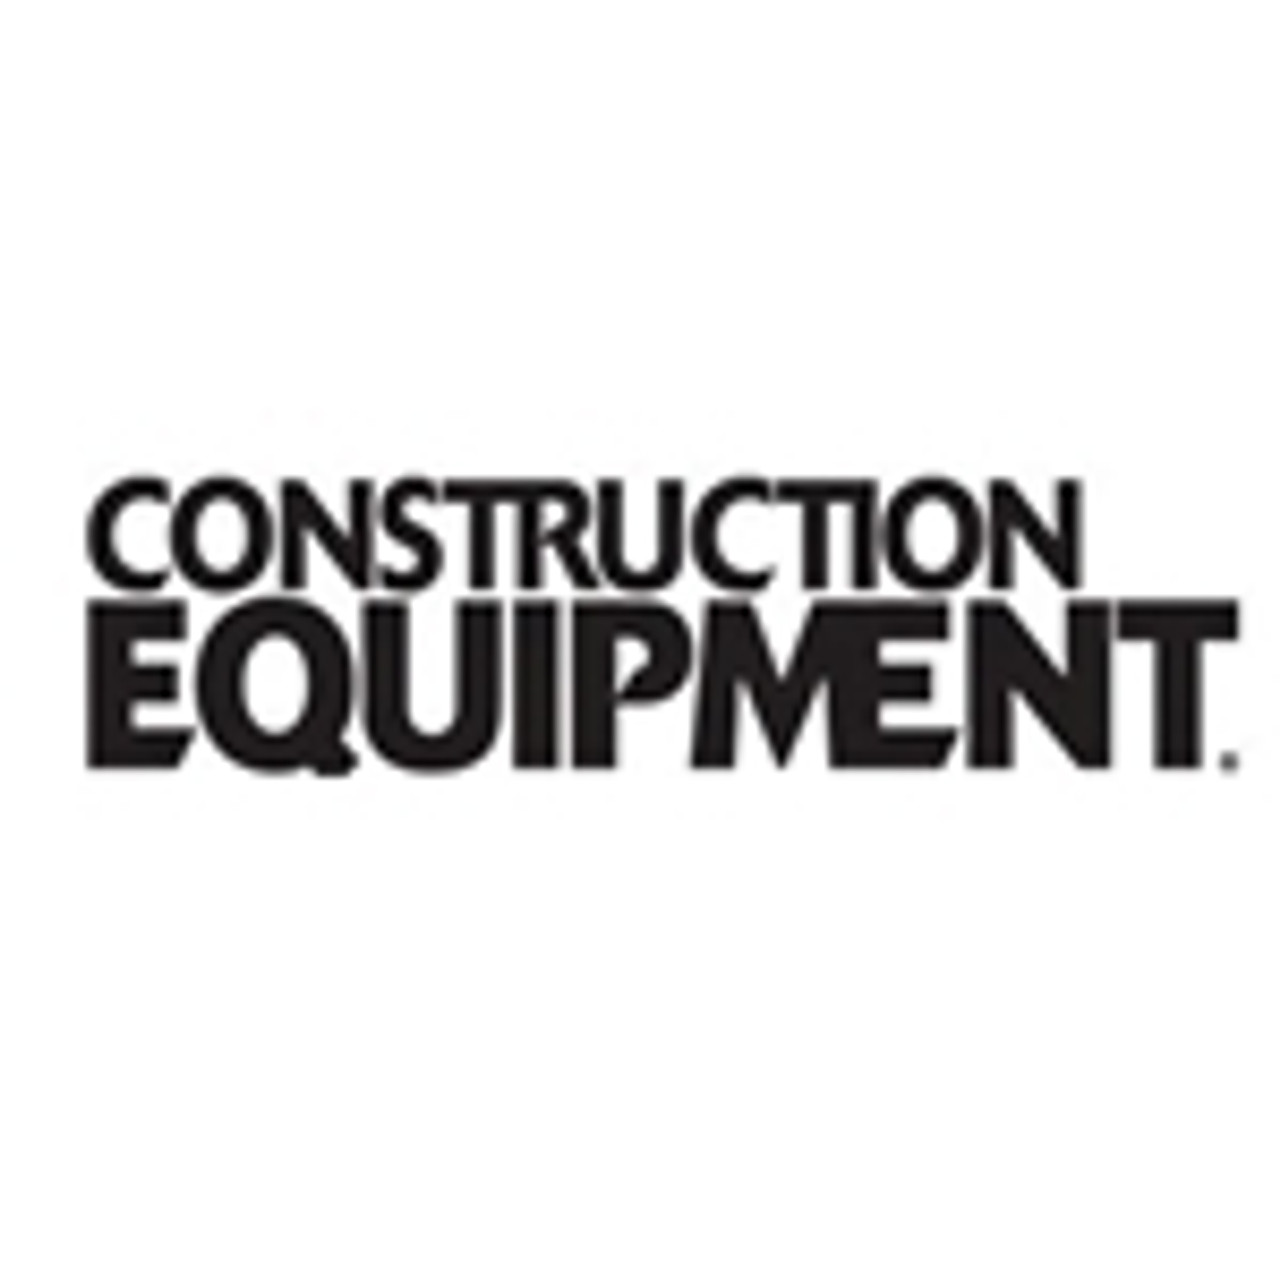 Construction Equipment Co.